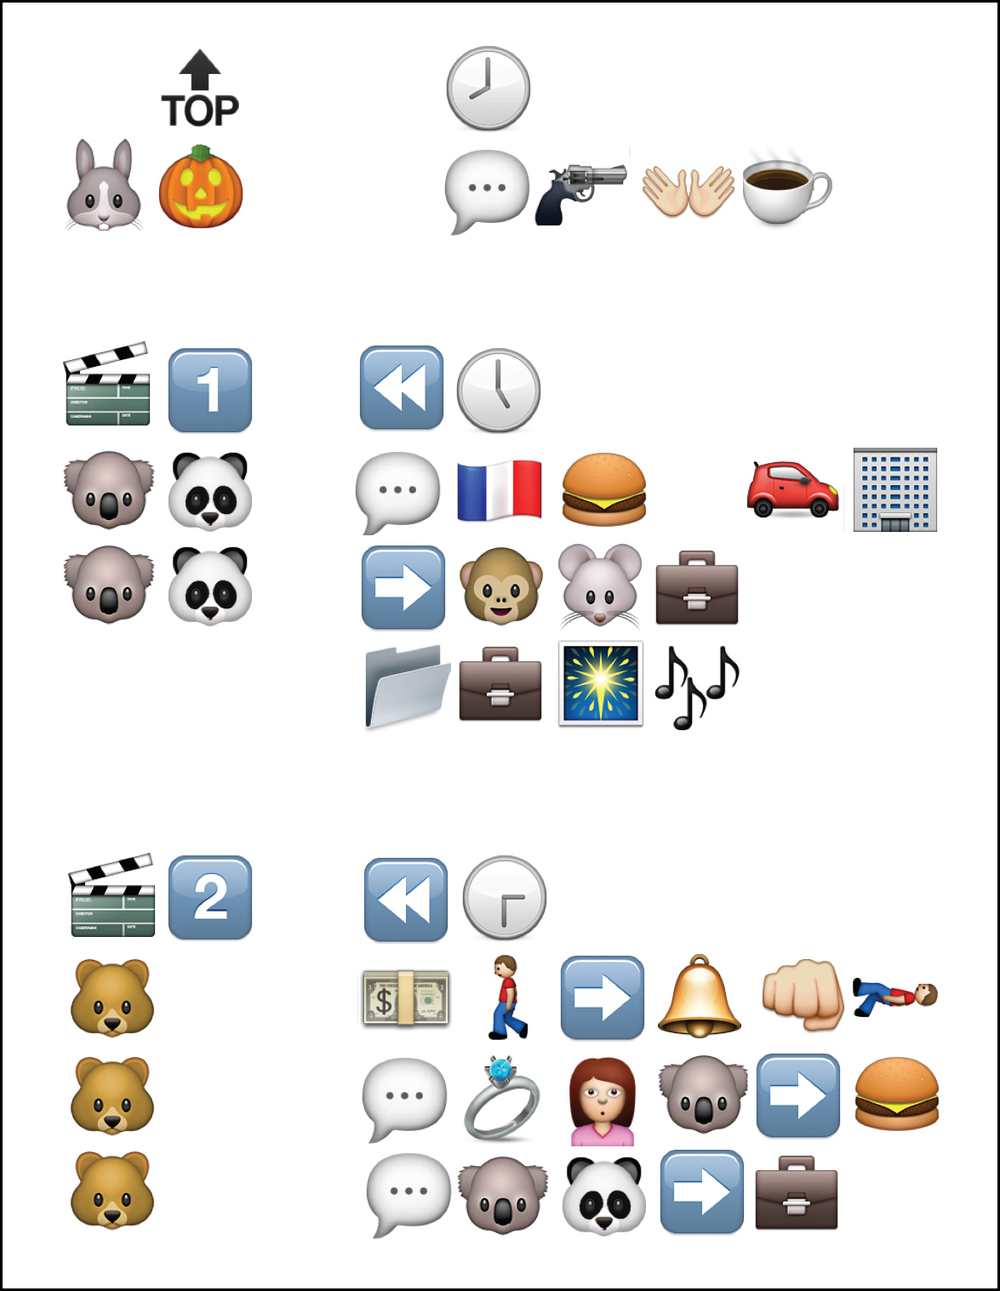 ART2373 Symbol Design - Emoji Narrative Detail: Joshua Johns